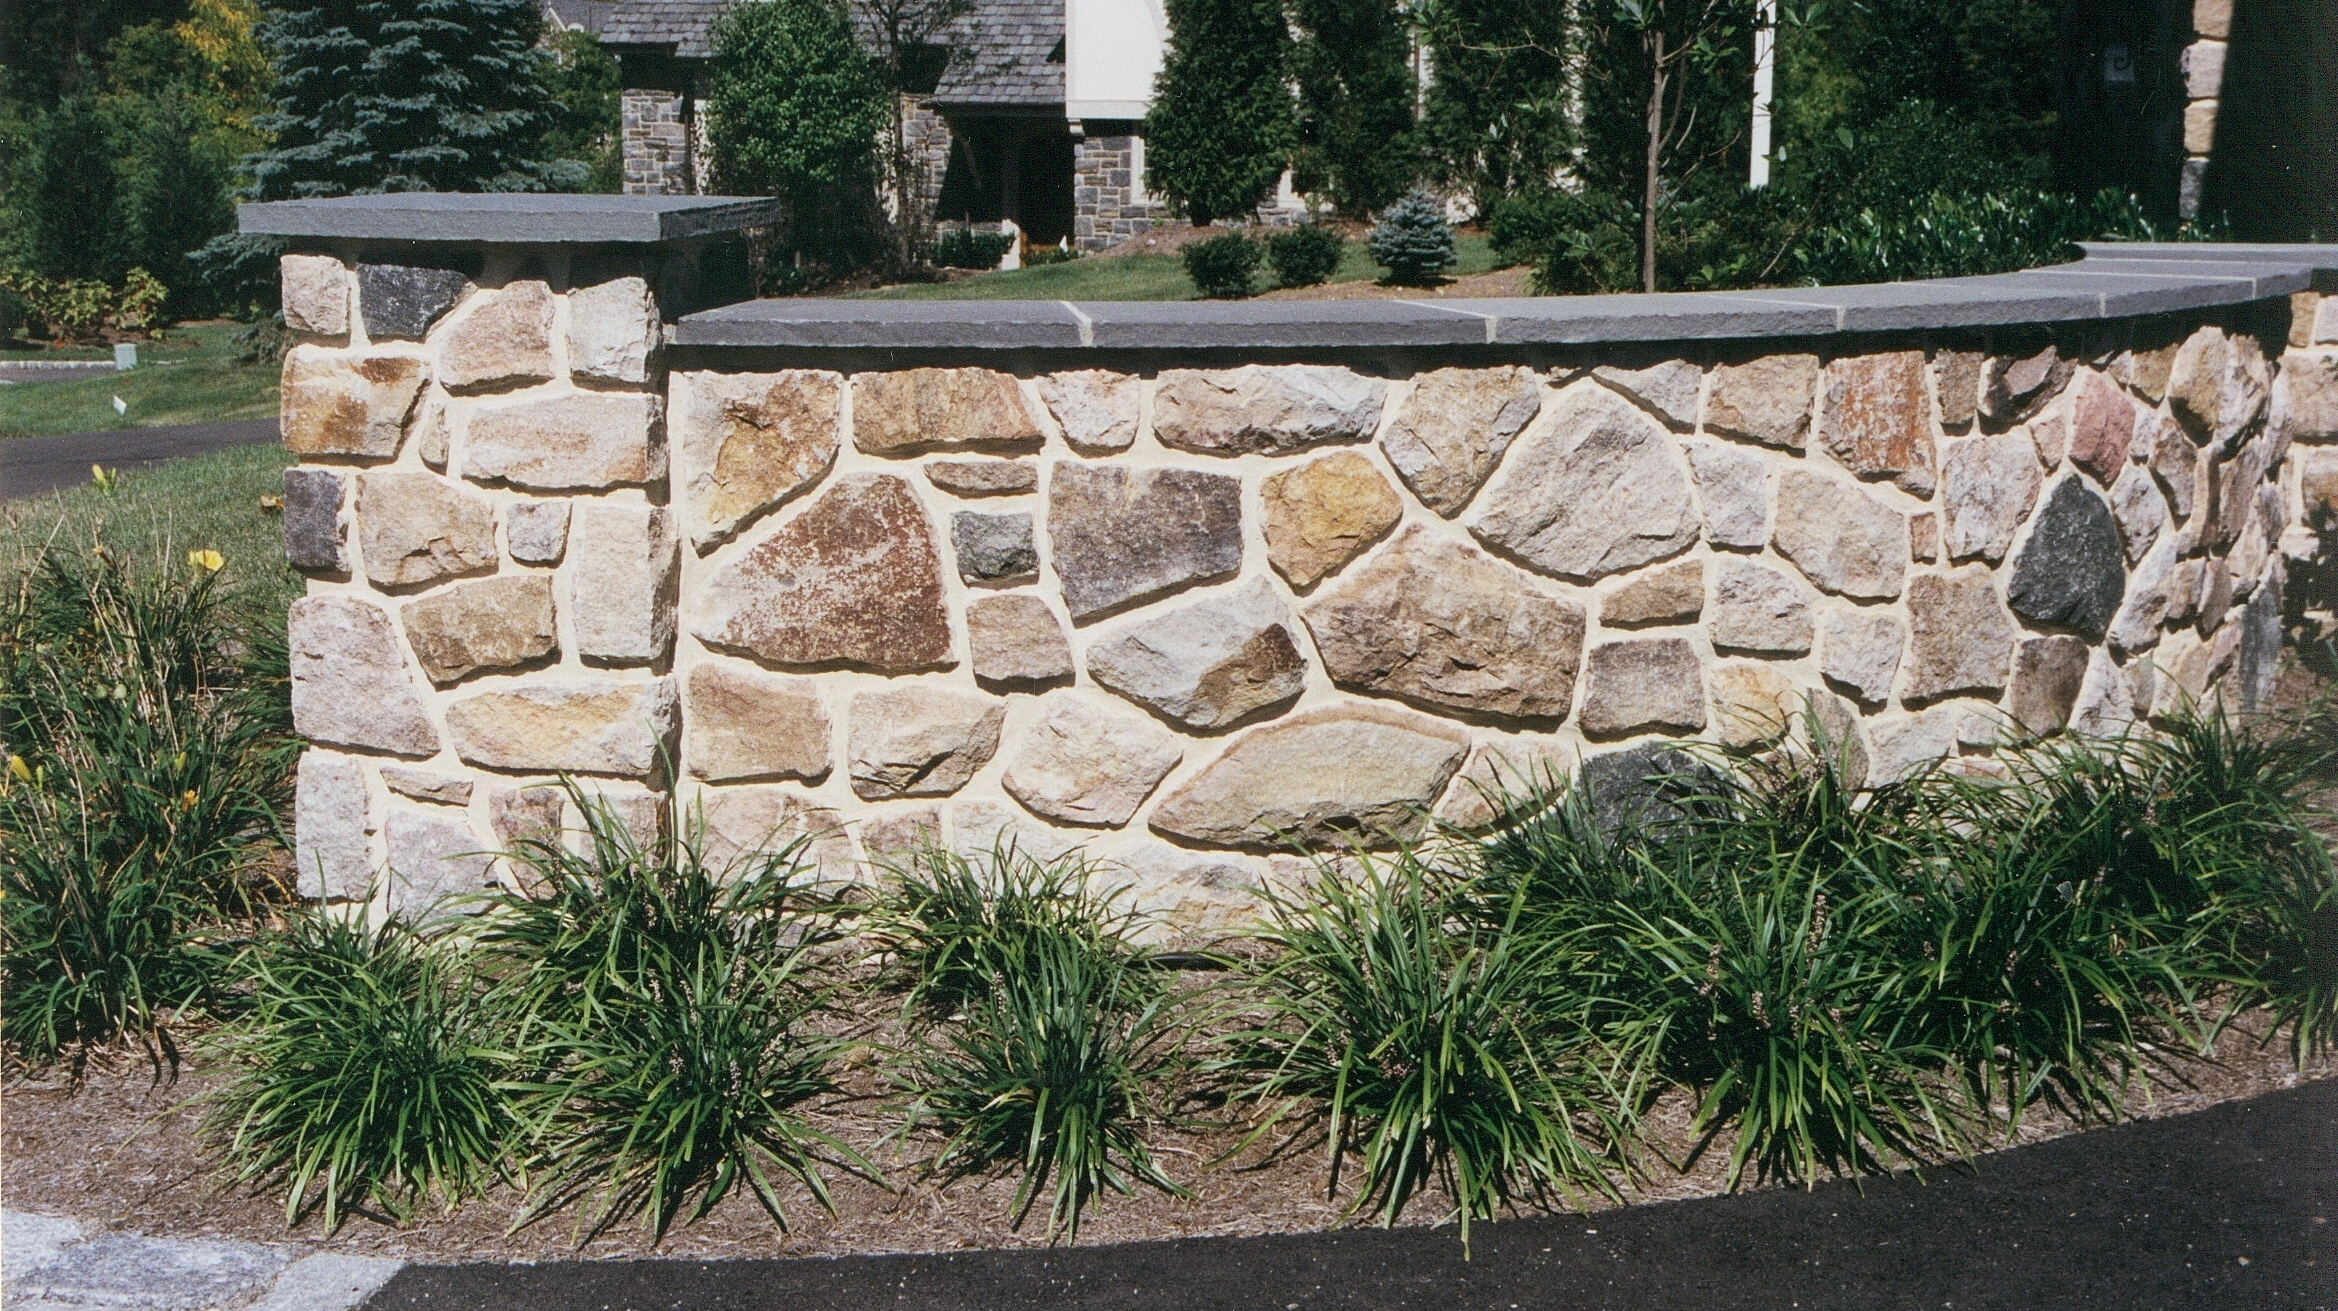 Stone Driveway Wall Flagstone Capping.jpg